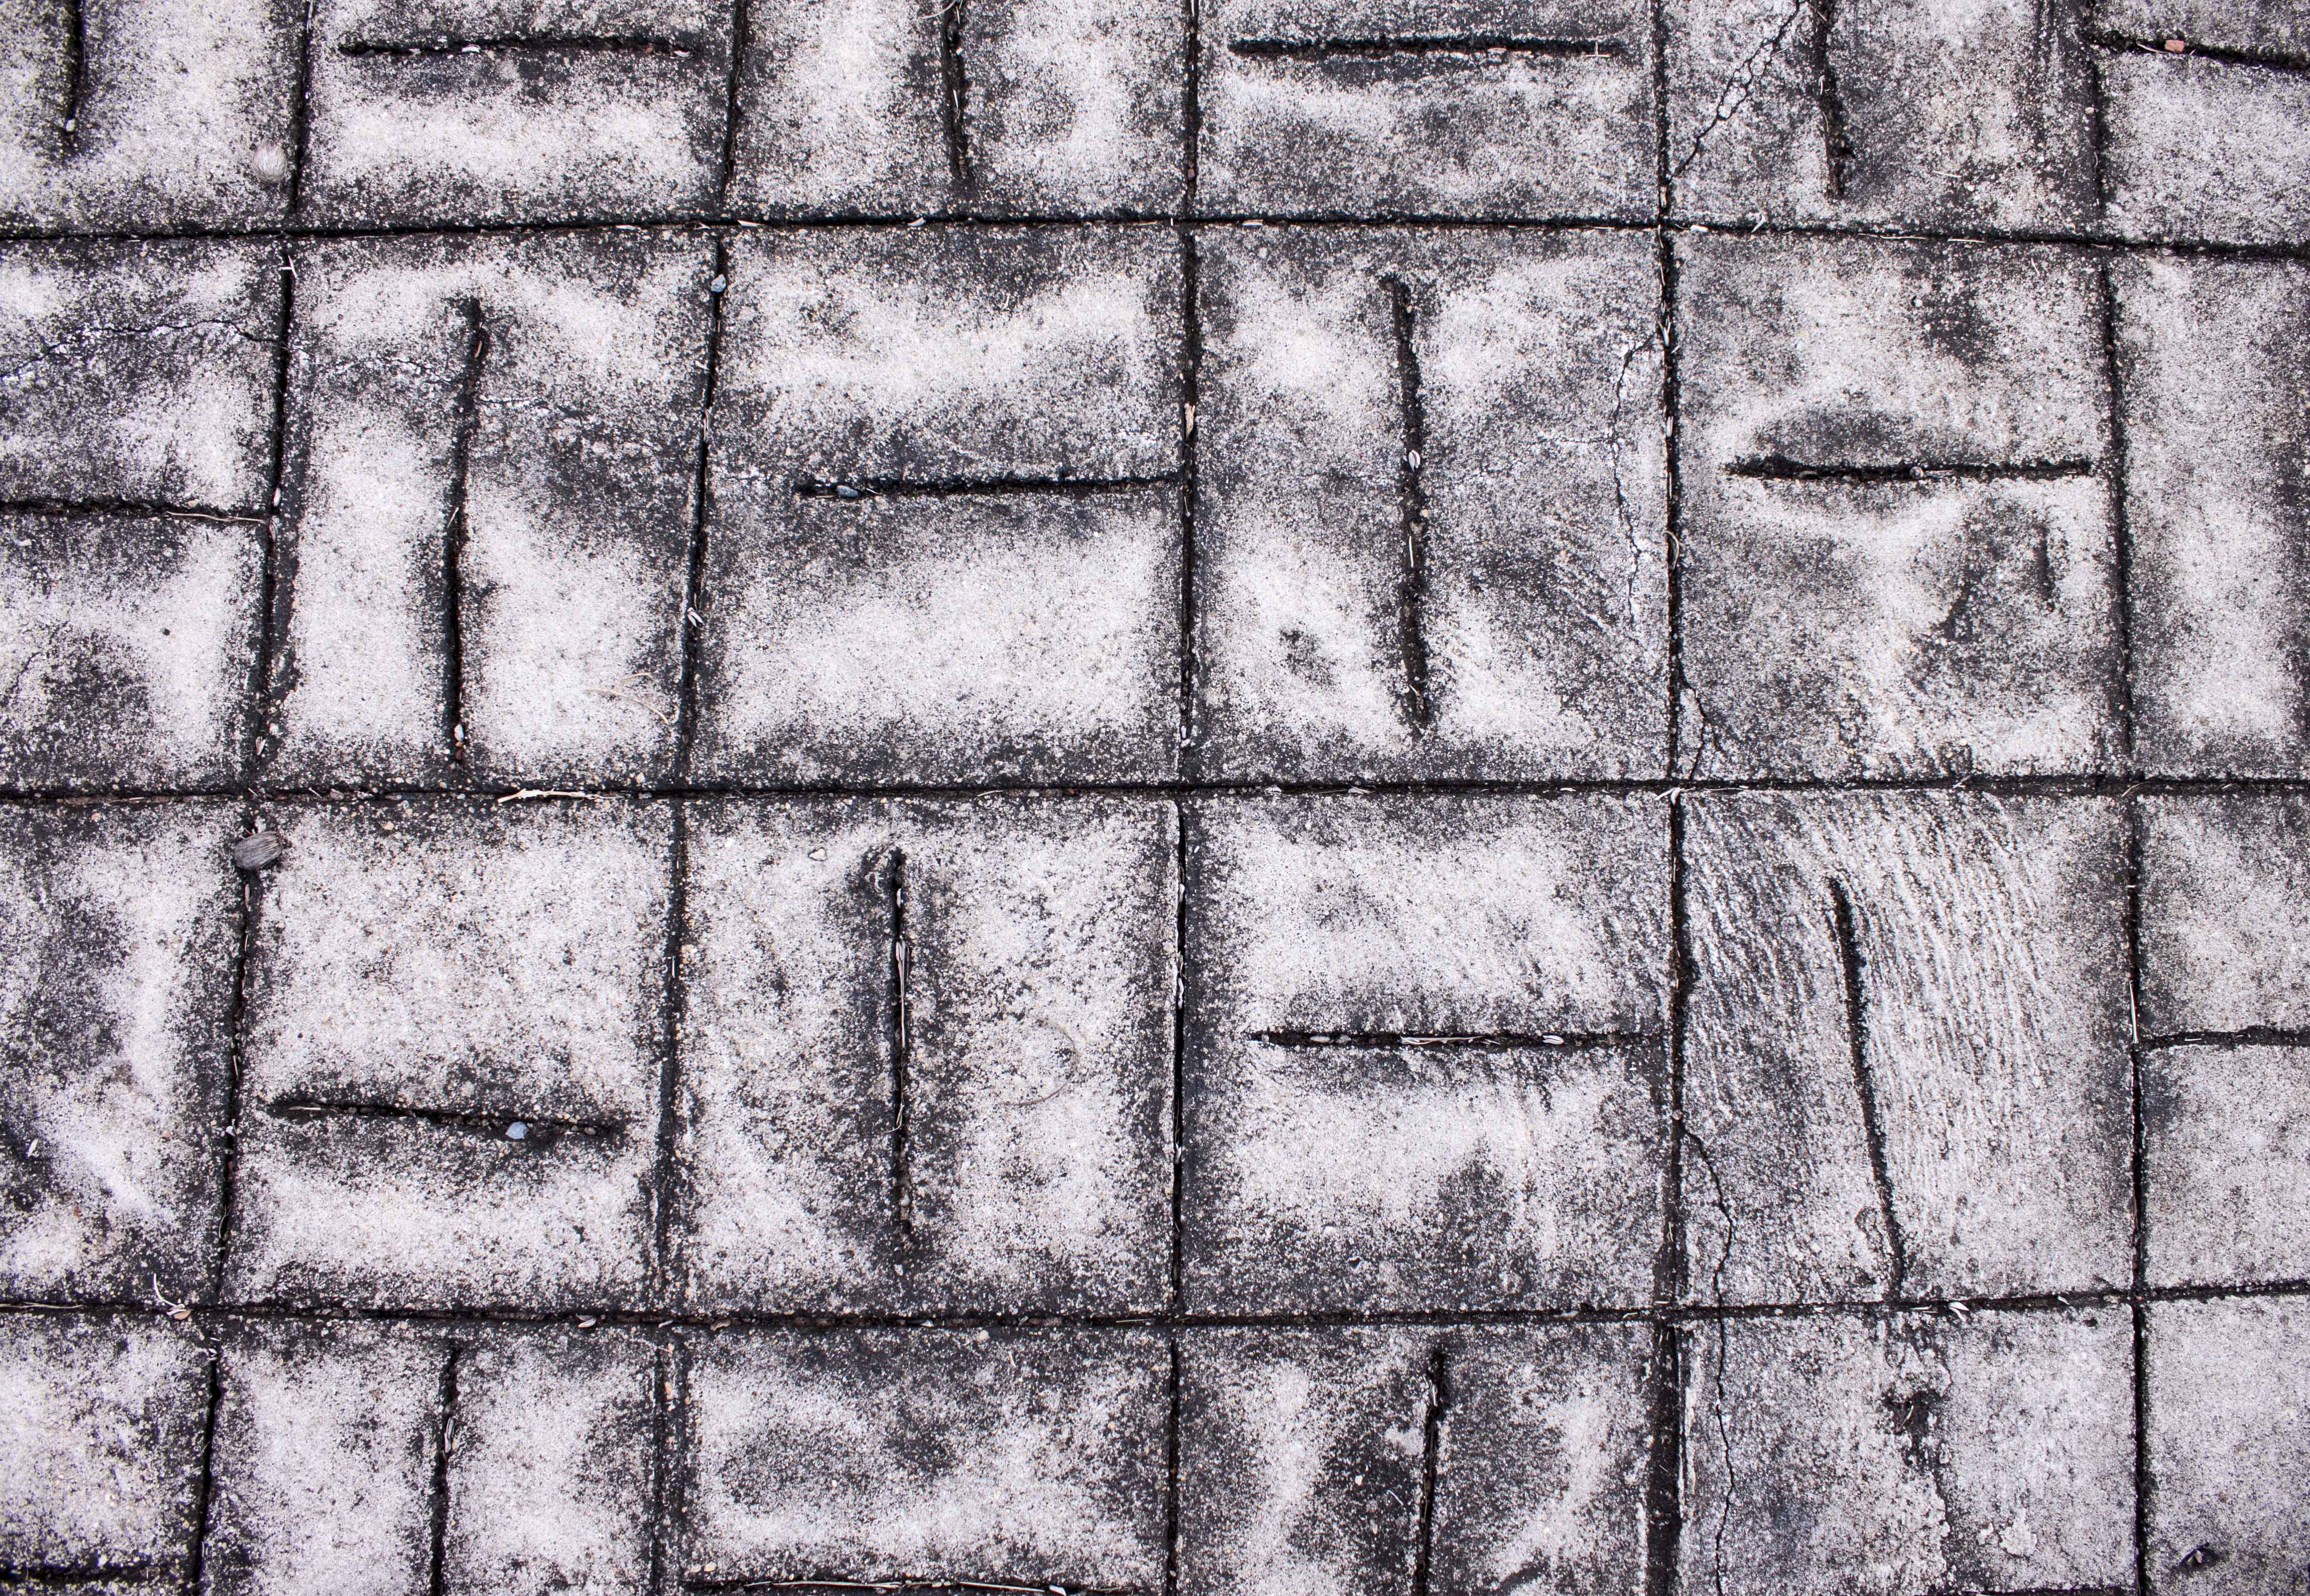 Tiled concrete texture, Abstract, Rough, Tiled, Textured, HQ Photo